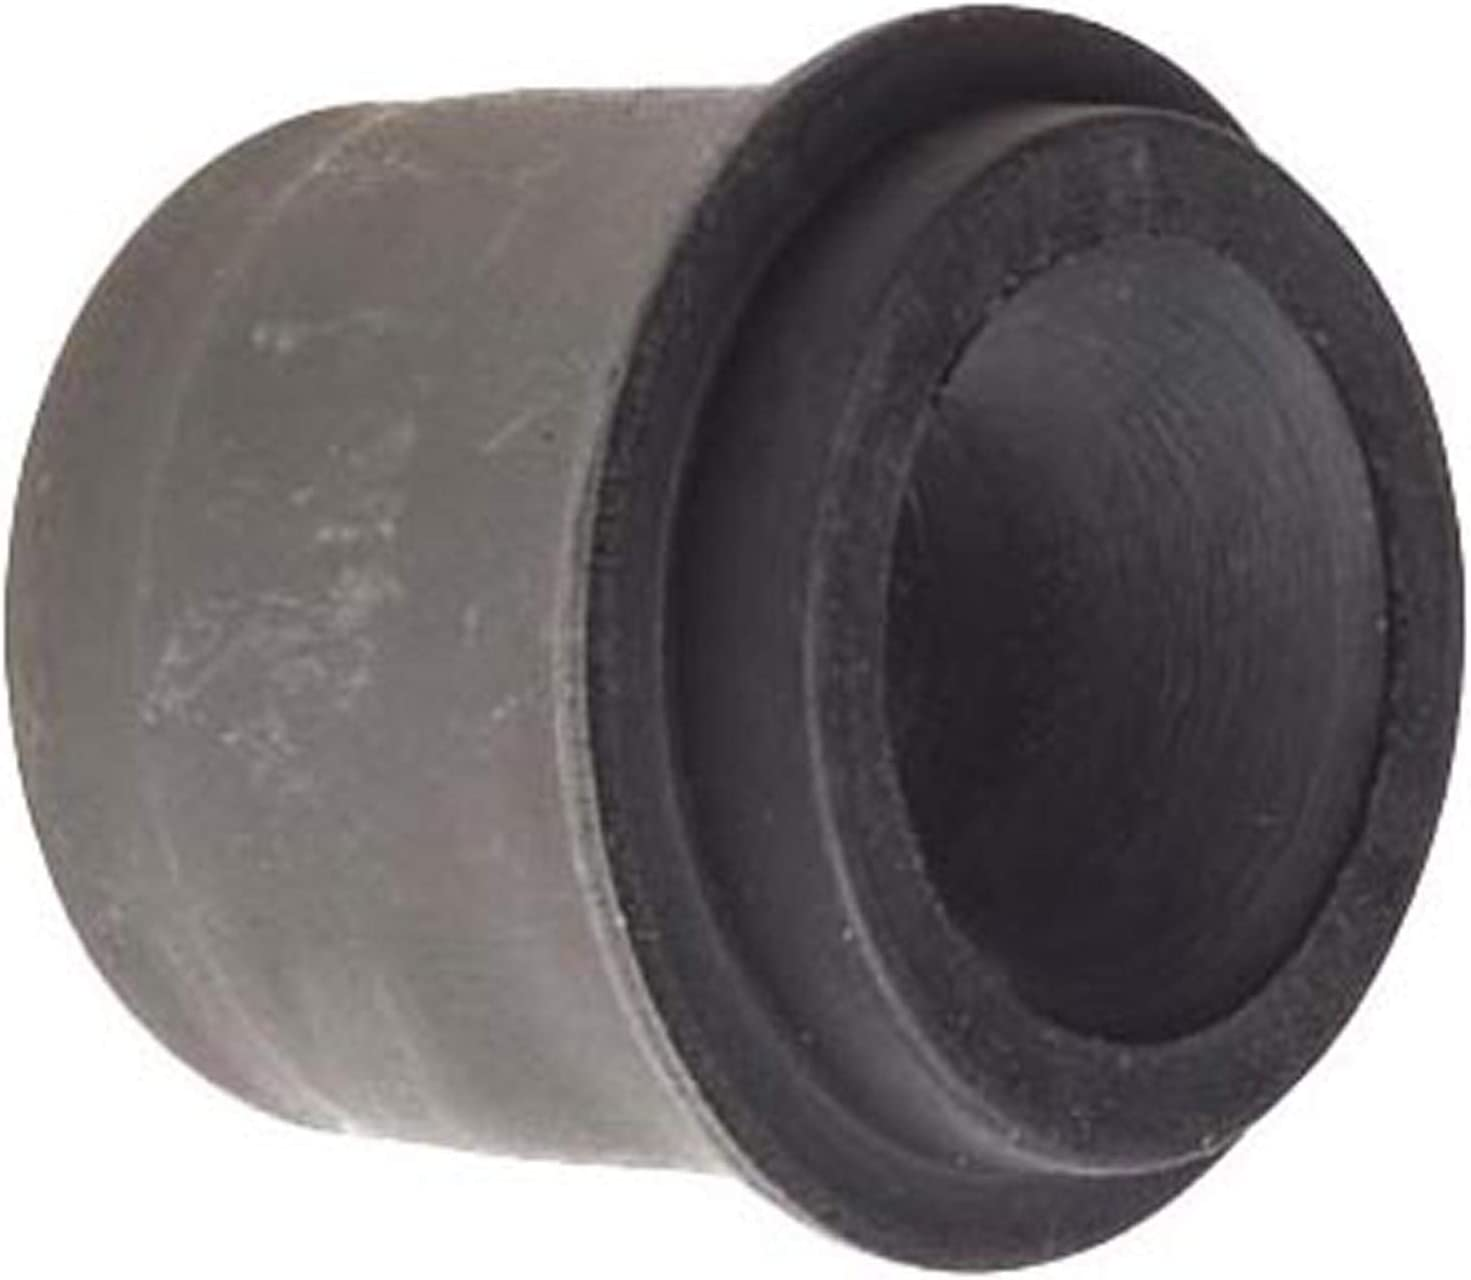 Max 77% OFF APDTY 145856 Bushing Max 79% OFF